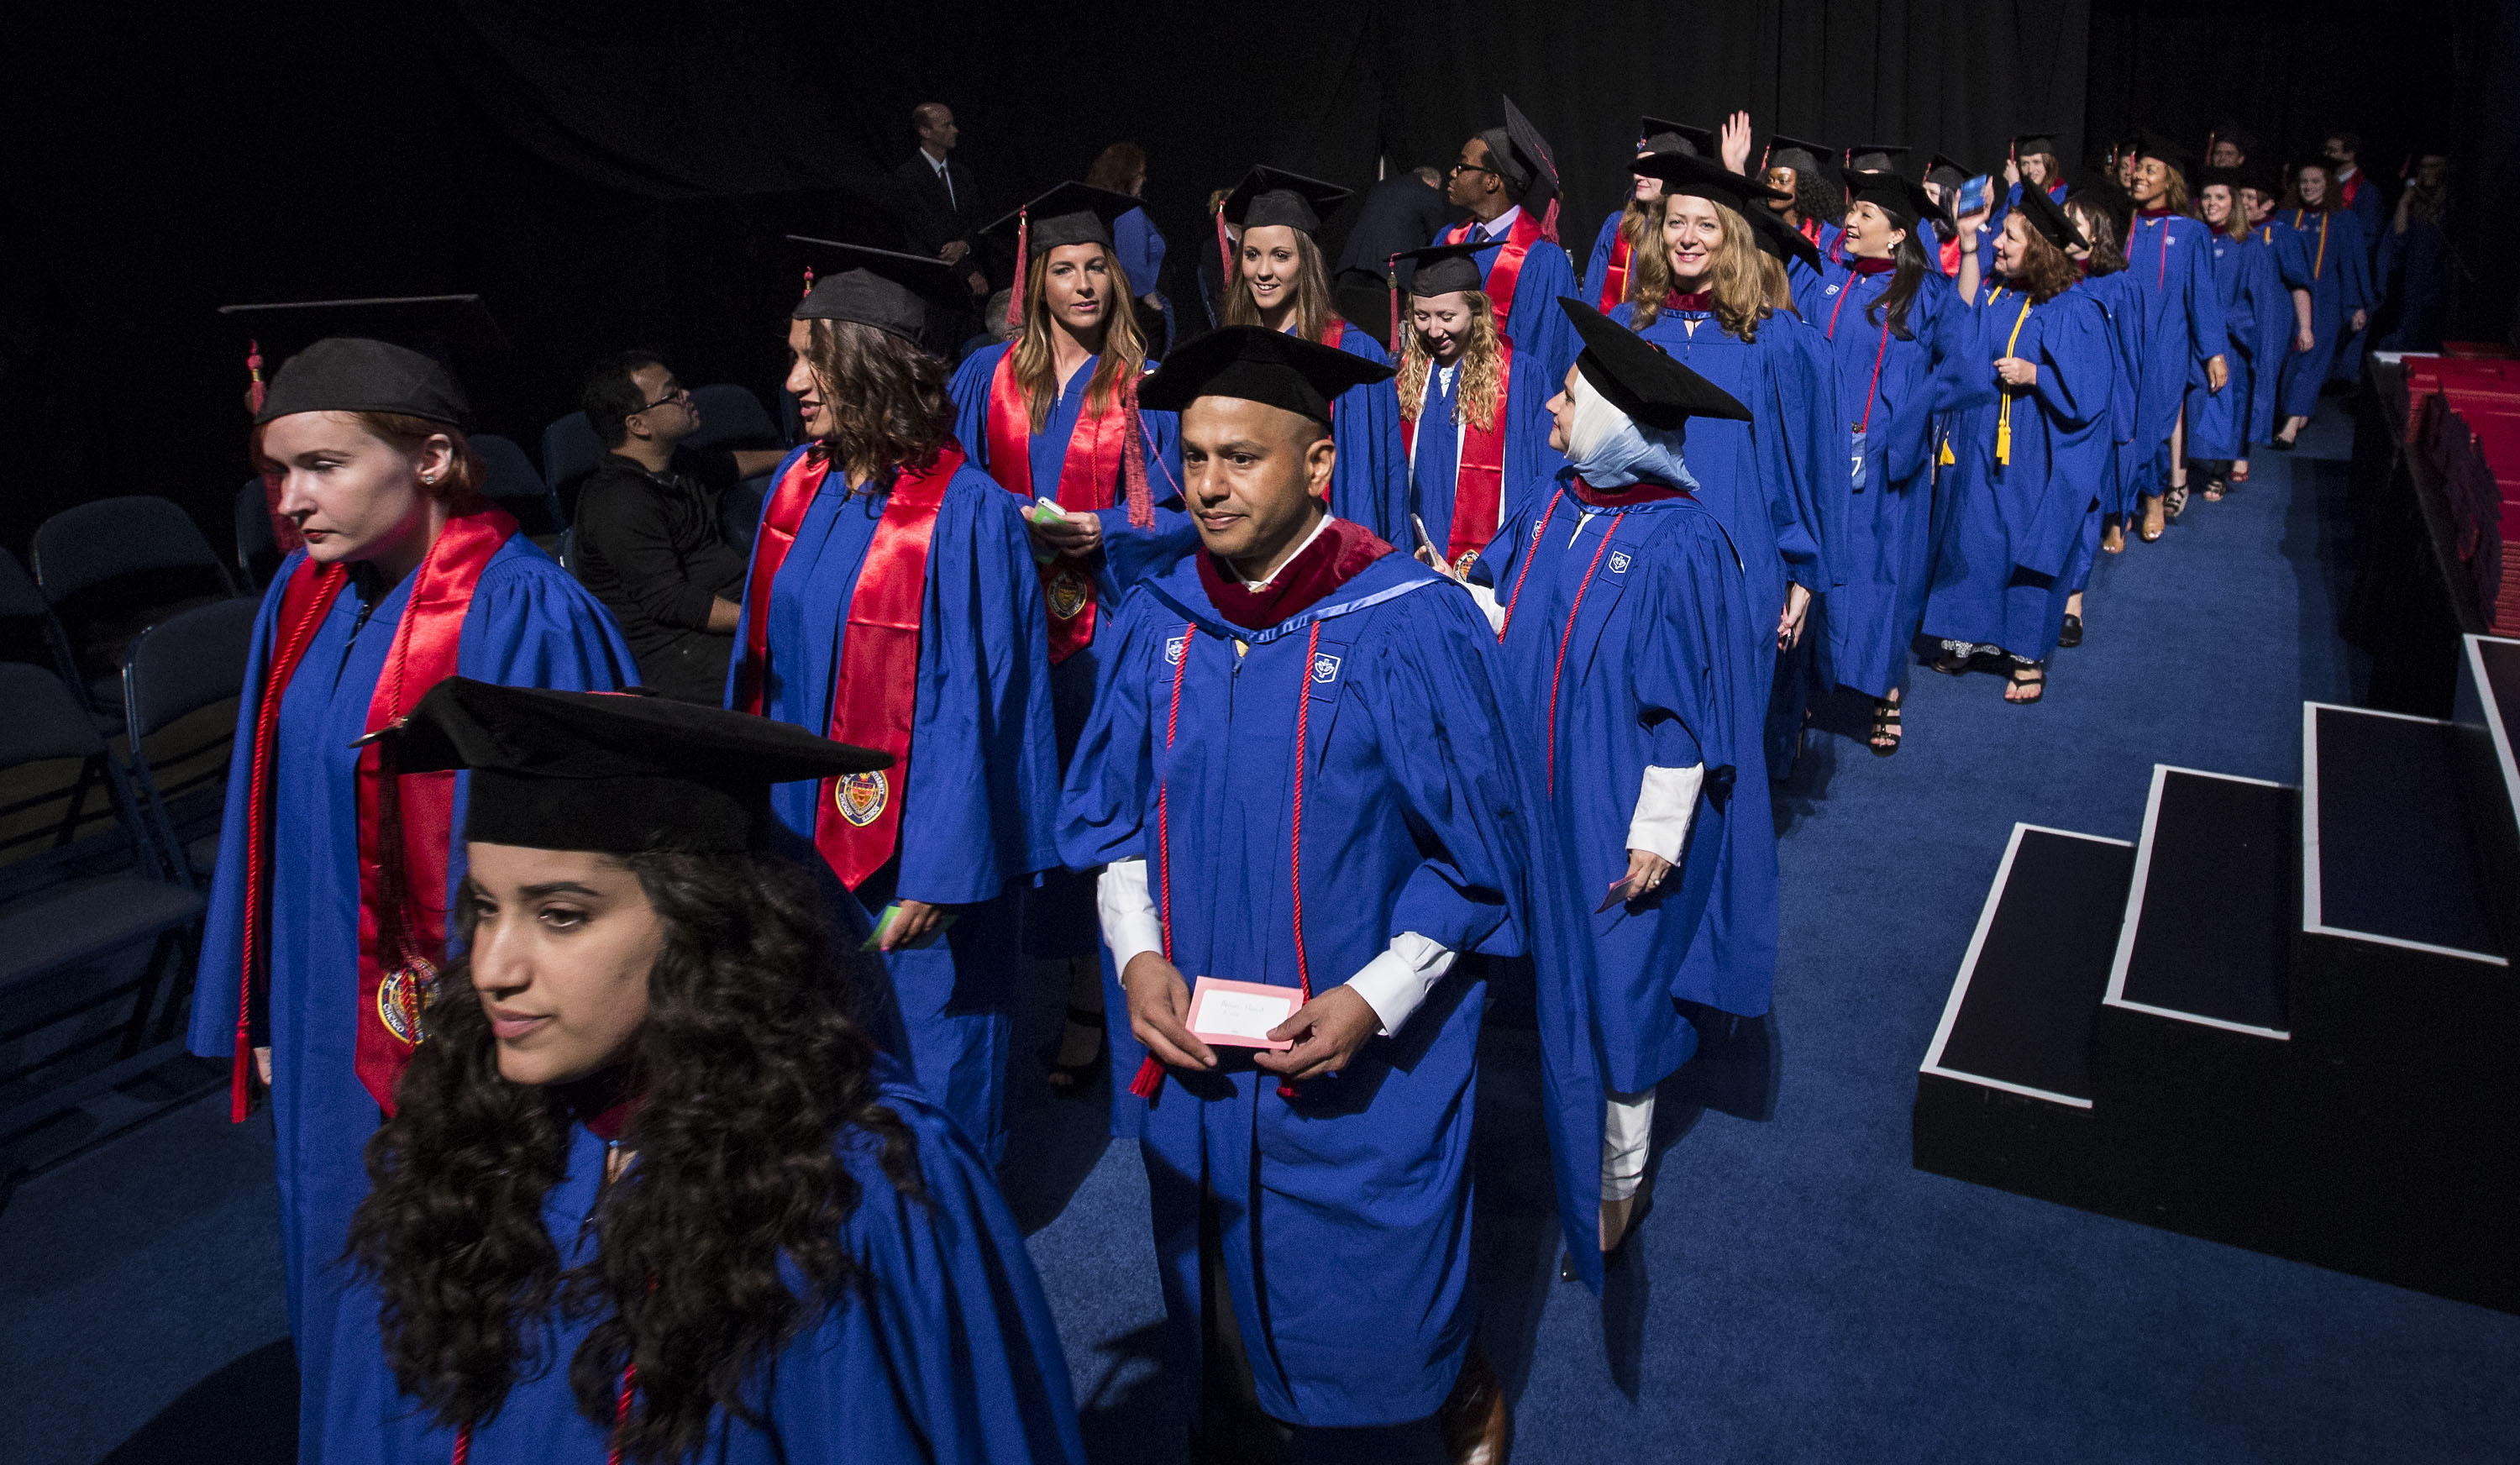 Commencement | About | College of Communication | DePaul